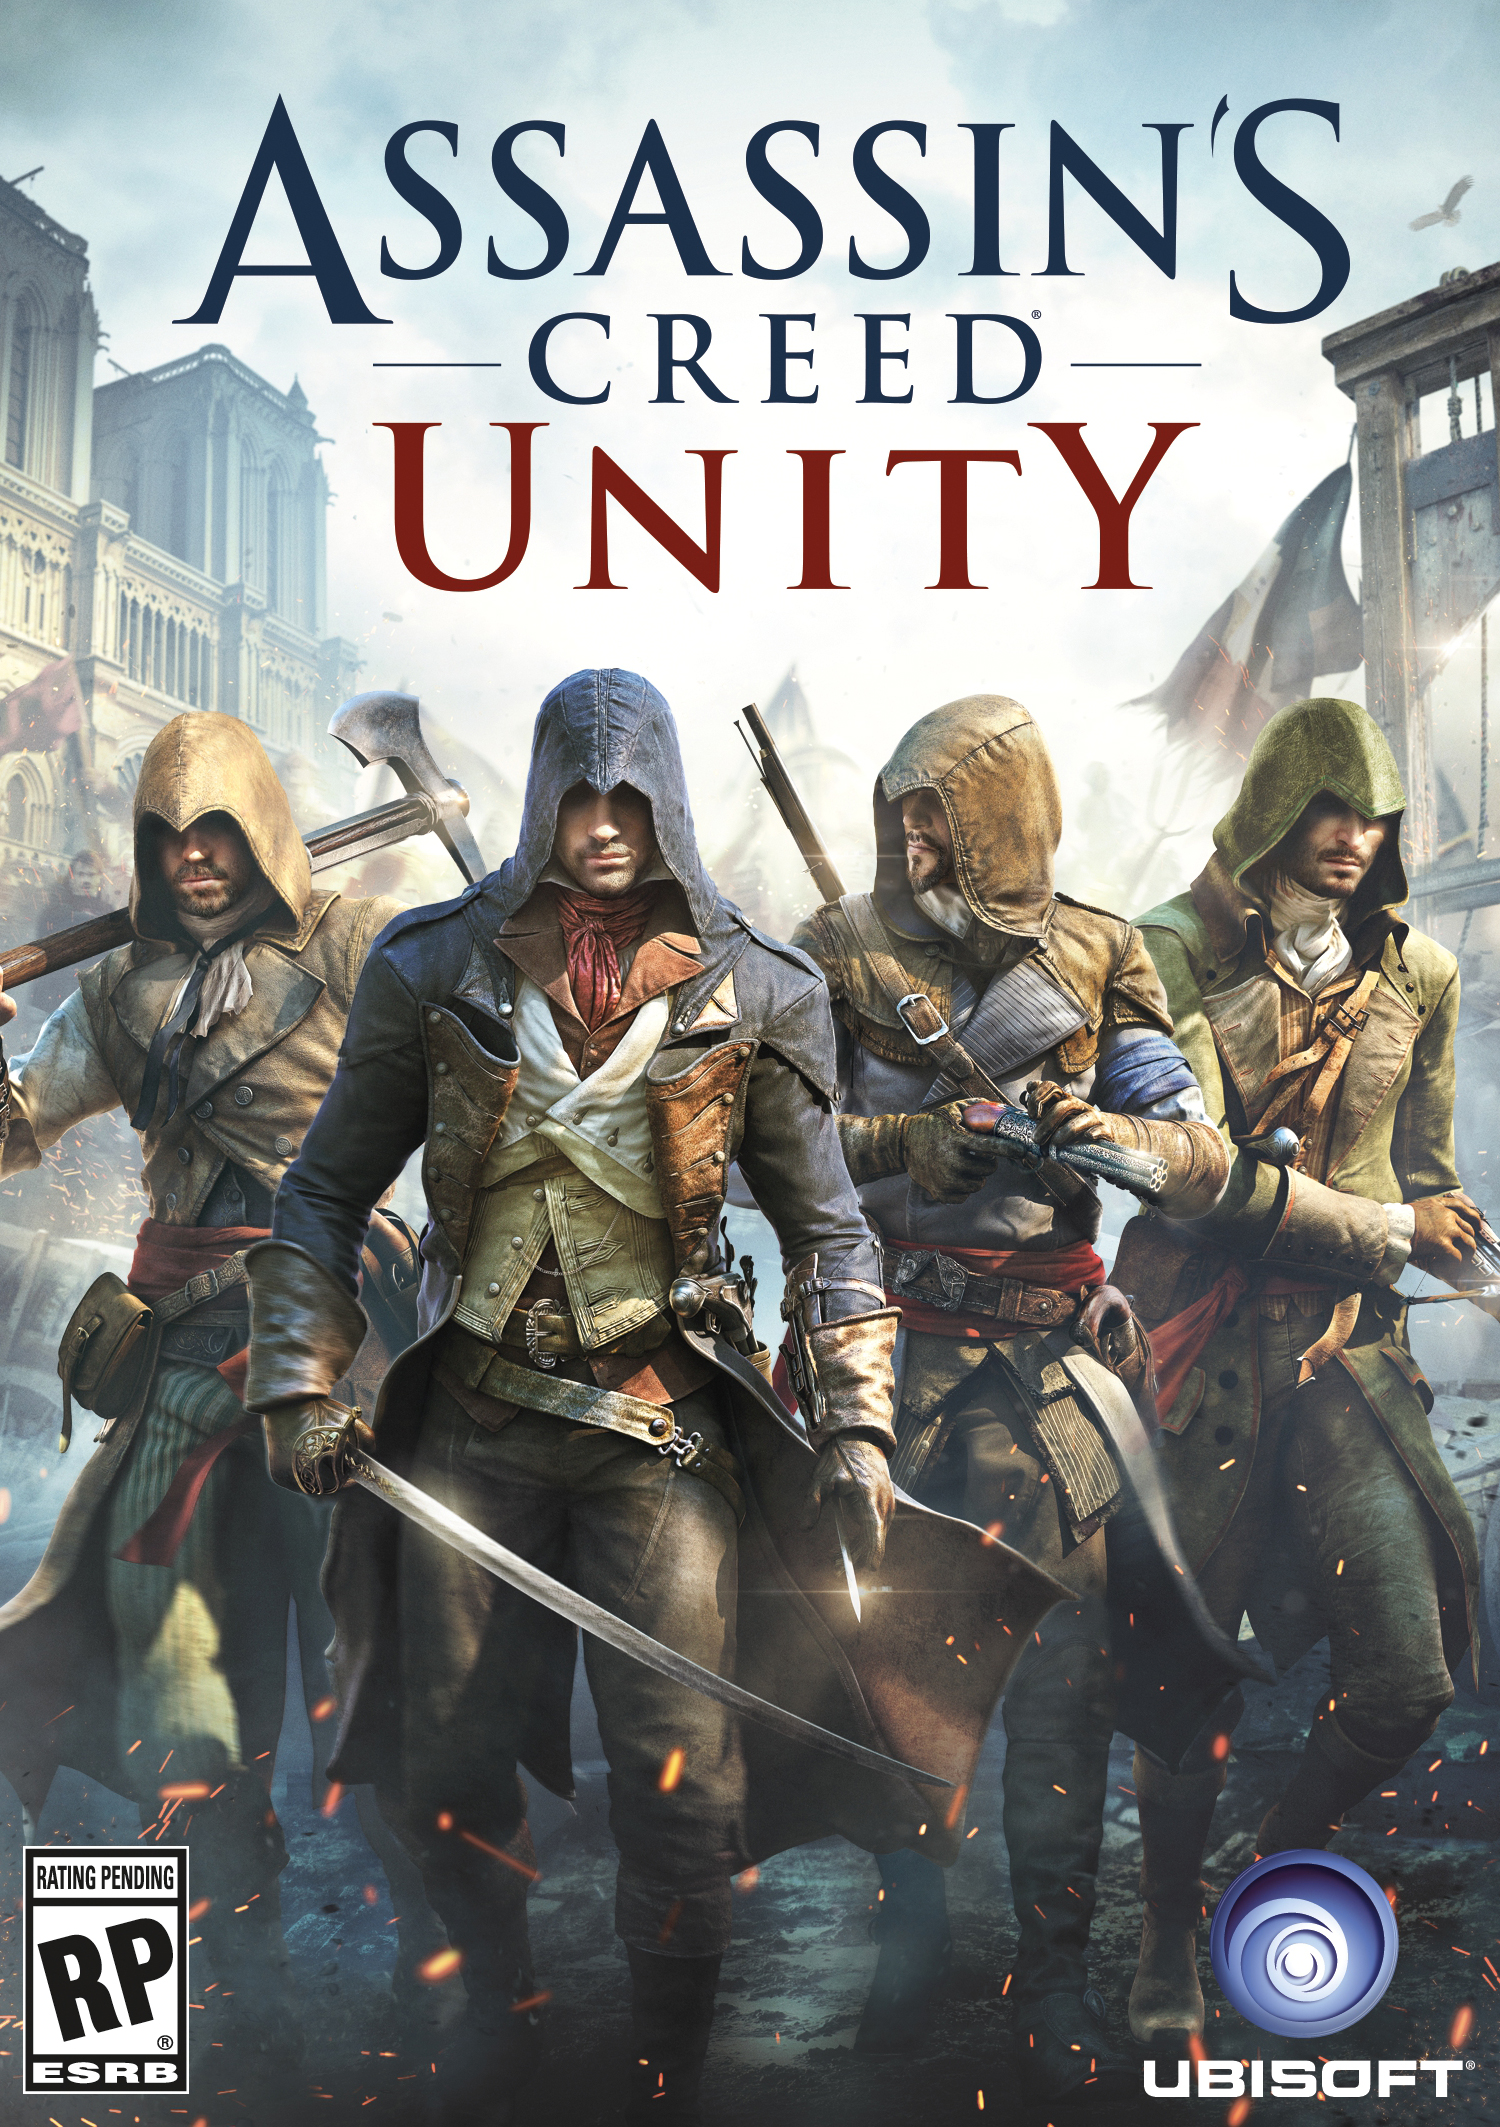 Assassin's creed unity save game game save download file.